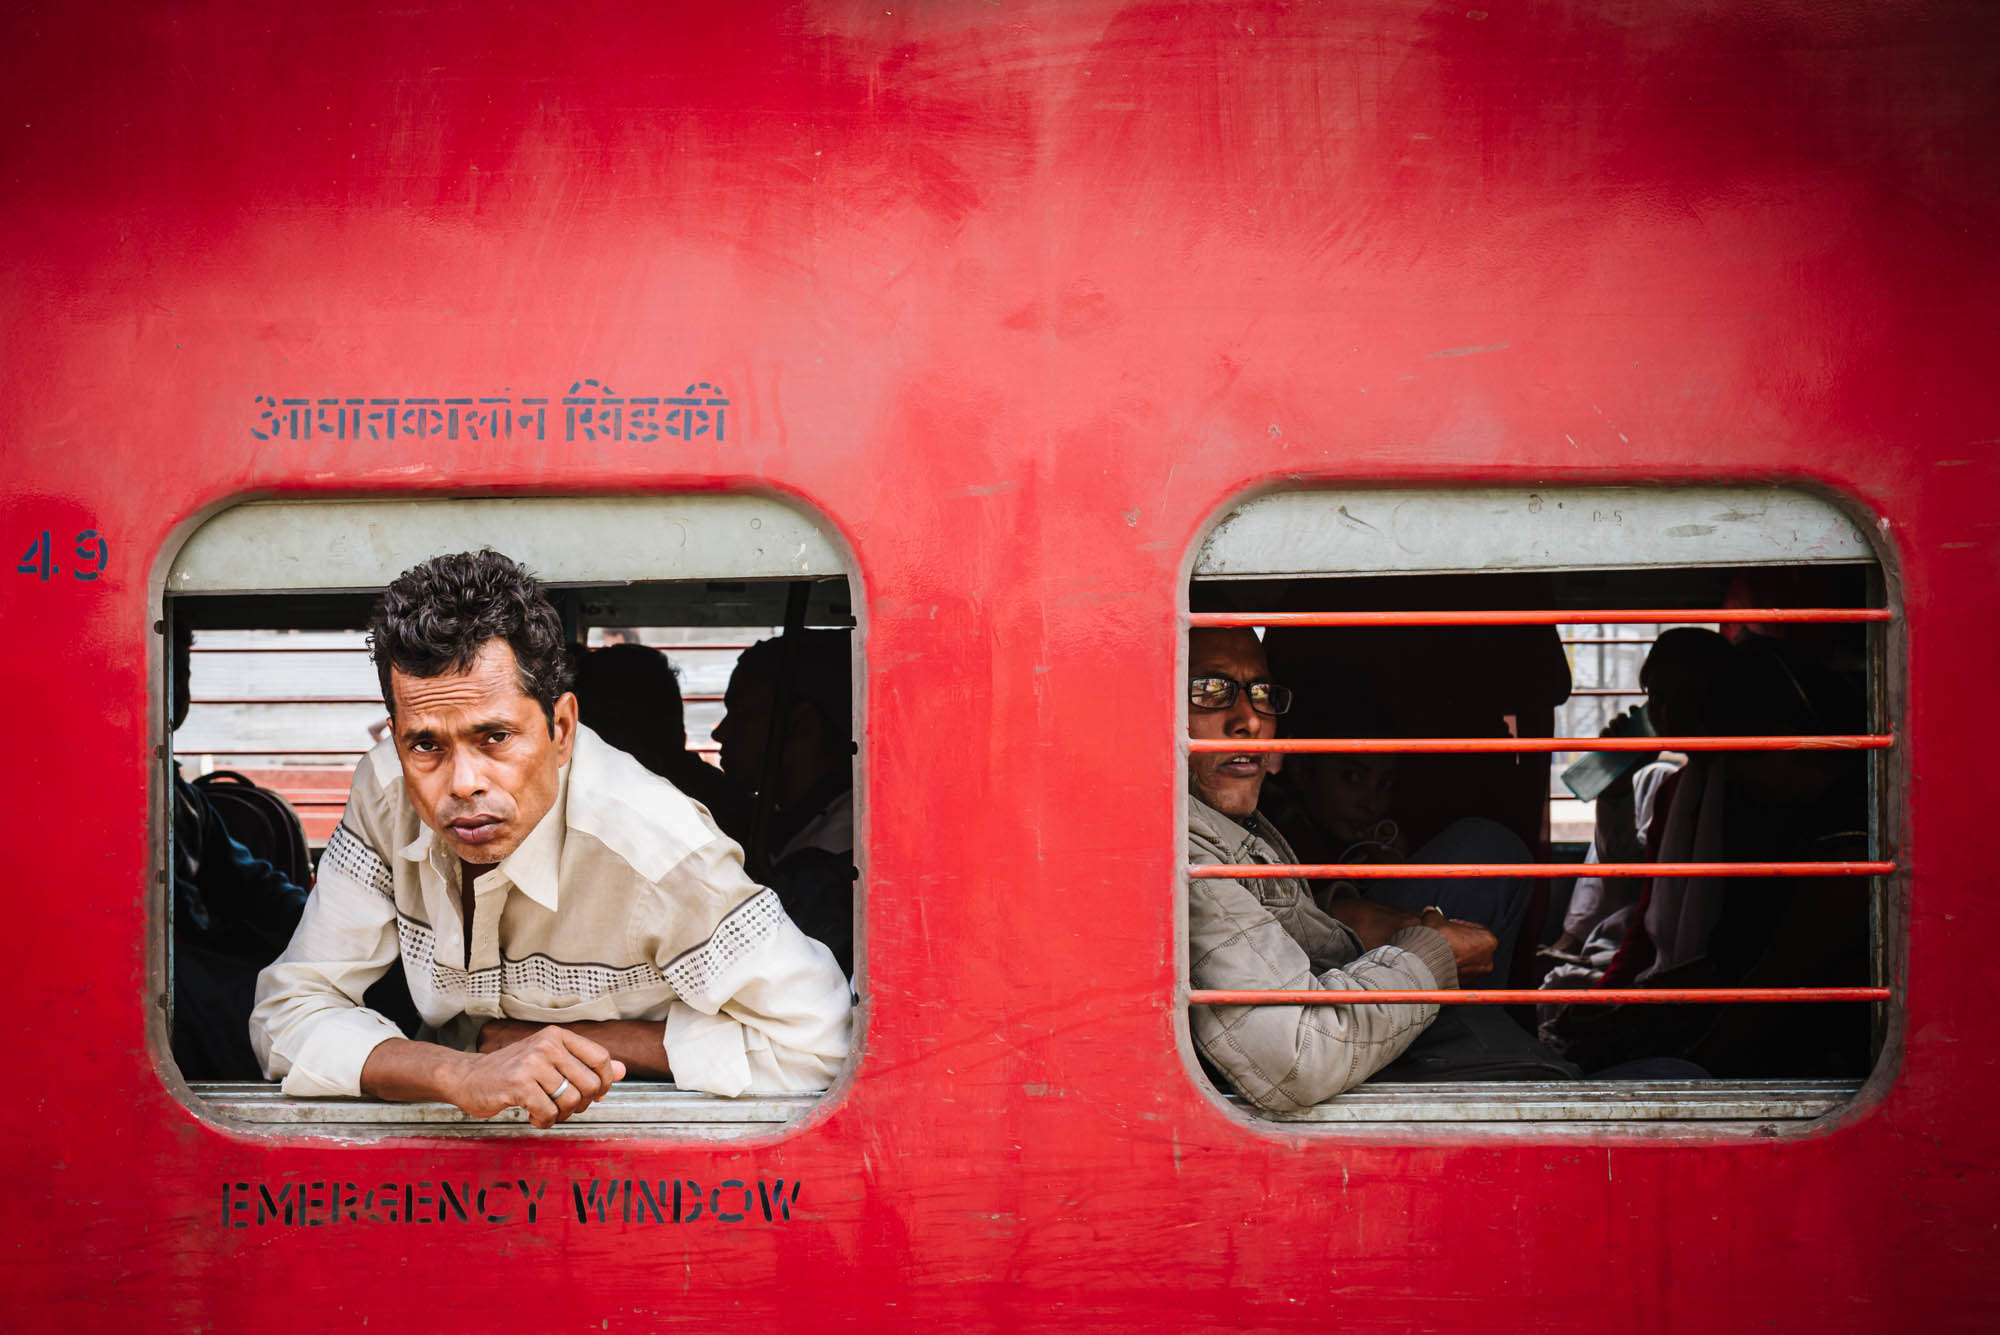 Indian train passenger peers from emergency exit of bright red Varanasi train as it sits in the station. Shot with a prime 35mm lens.